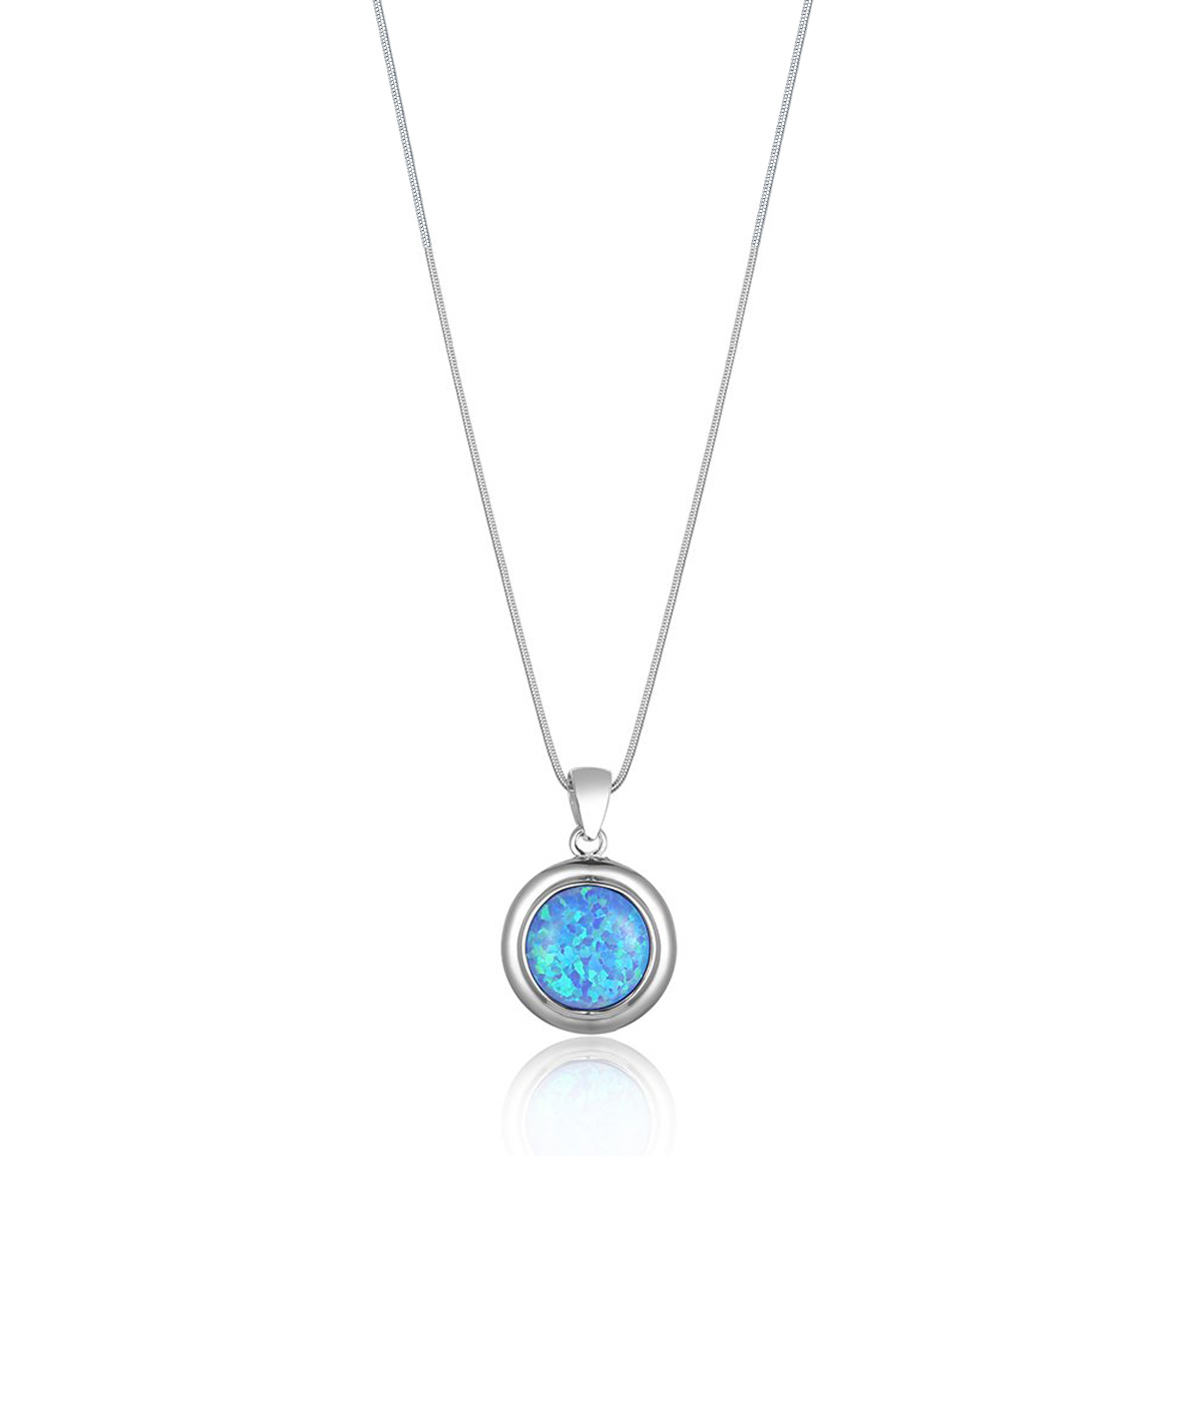 8mm Round Opal Necklace